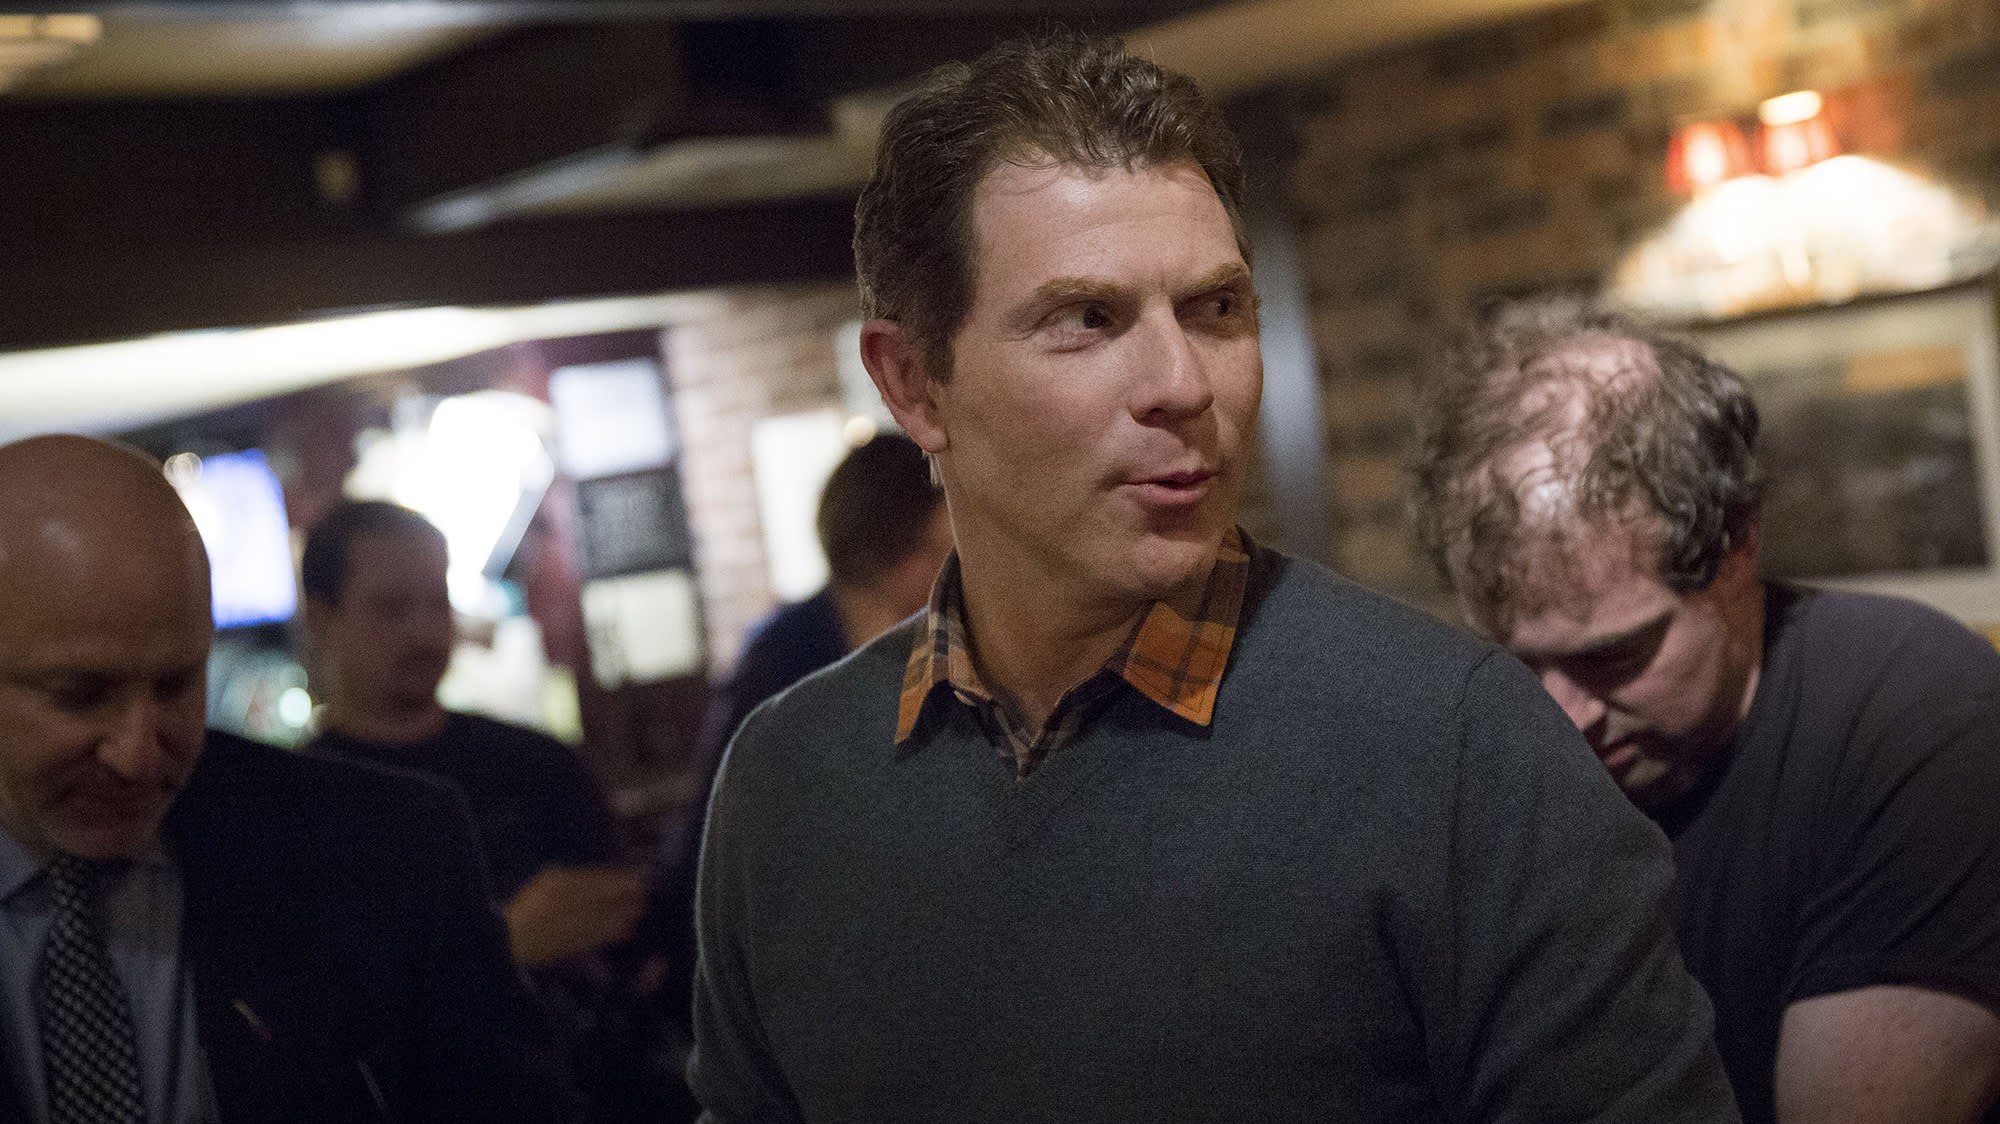 Celebrity chef Bobby Flay isn't buying into the meatless burger craze, yet